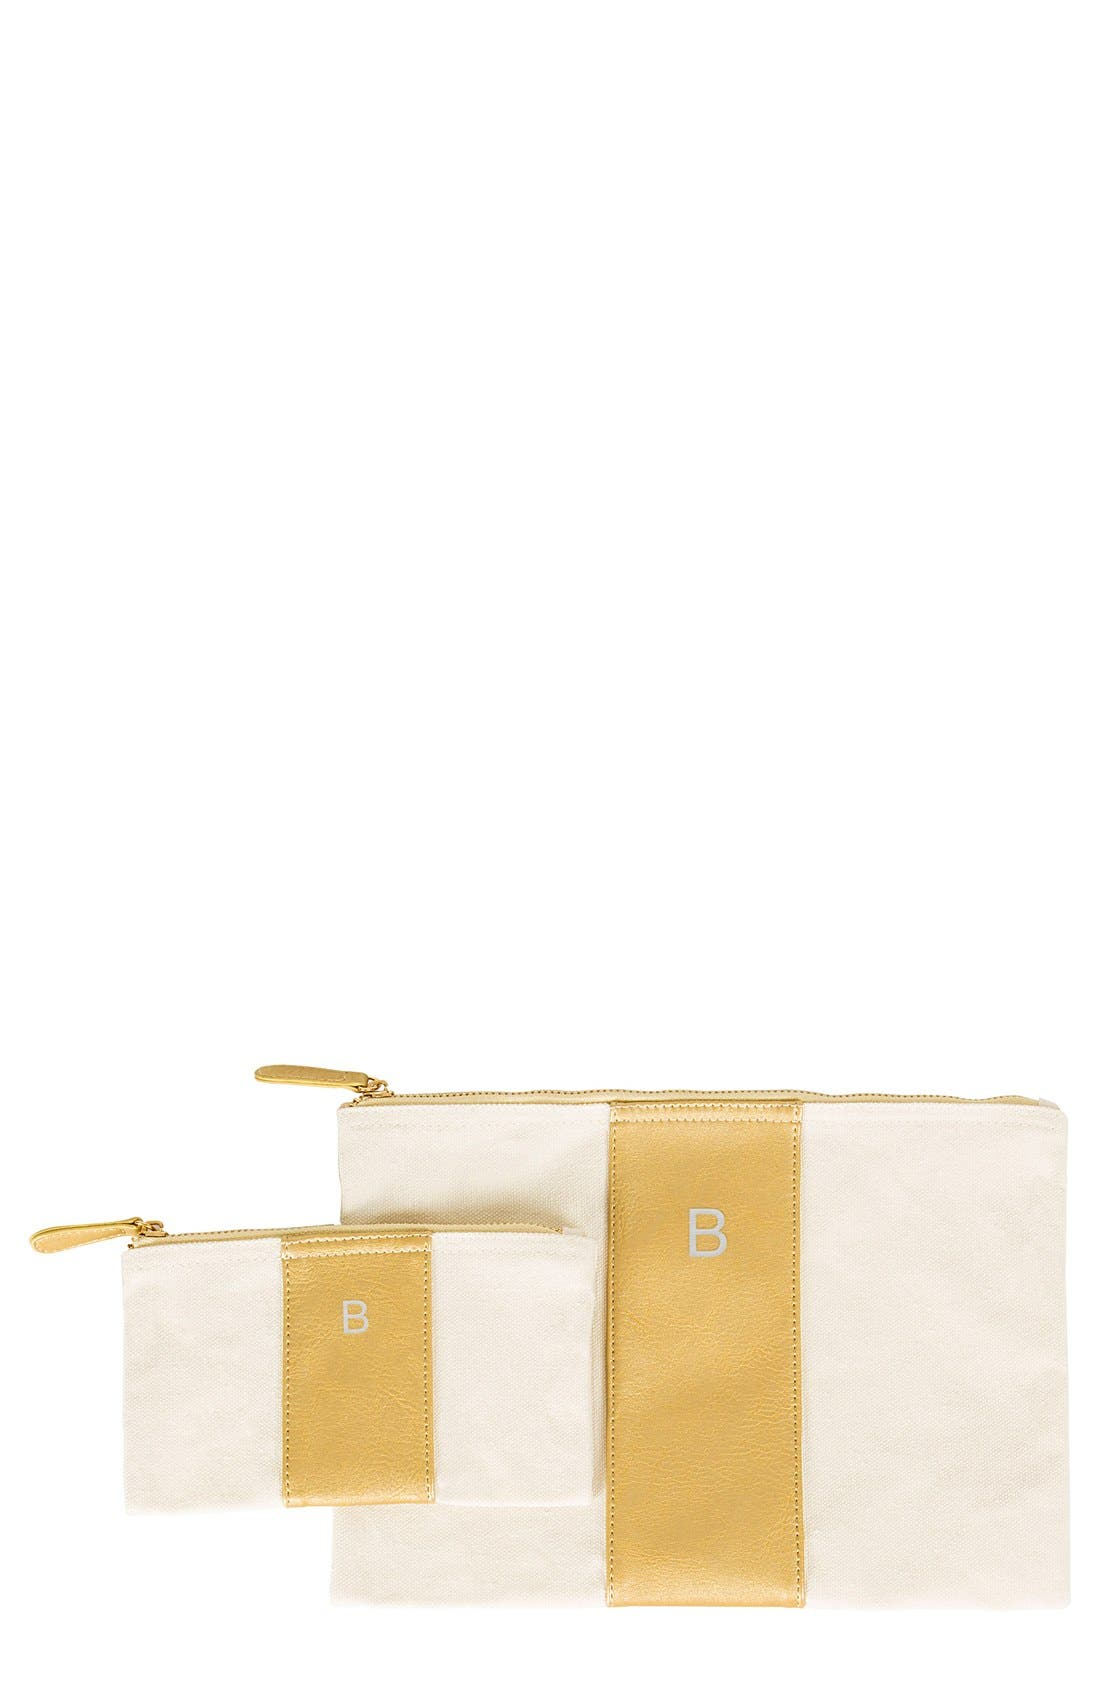 Personalized Faux Leather Clutch,                             Main thumbnail 40, color,